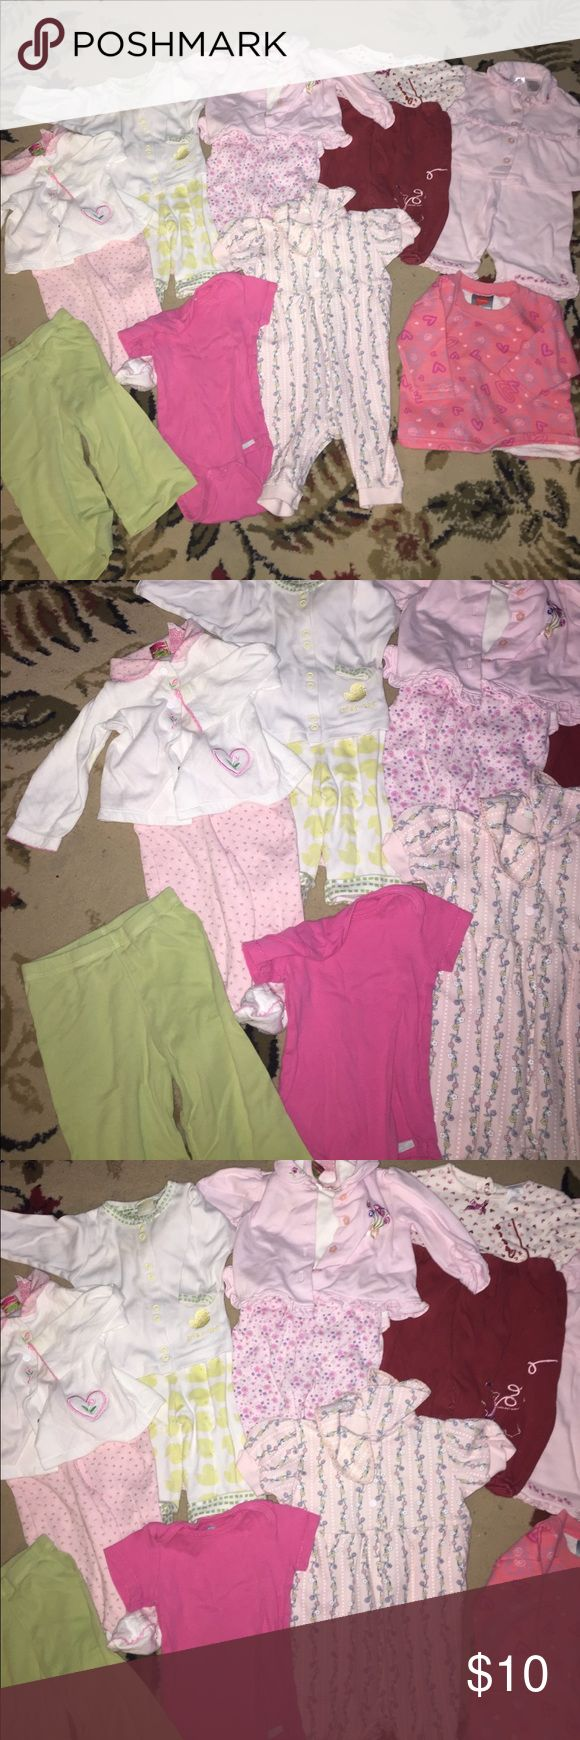 6 complete outfits, 1 pant 2 sweatshirt 2 onesie 6 complete outfits one pant one onesie one sweatshirt. 3-6 months Matching Sets